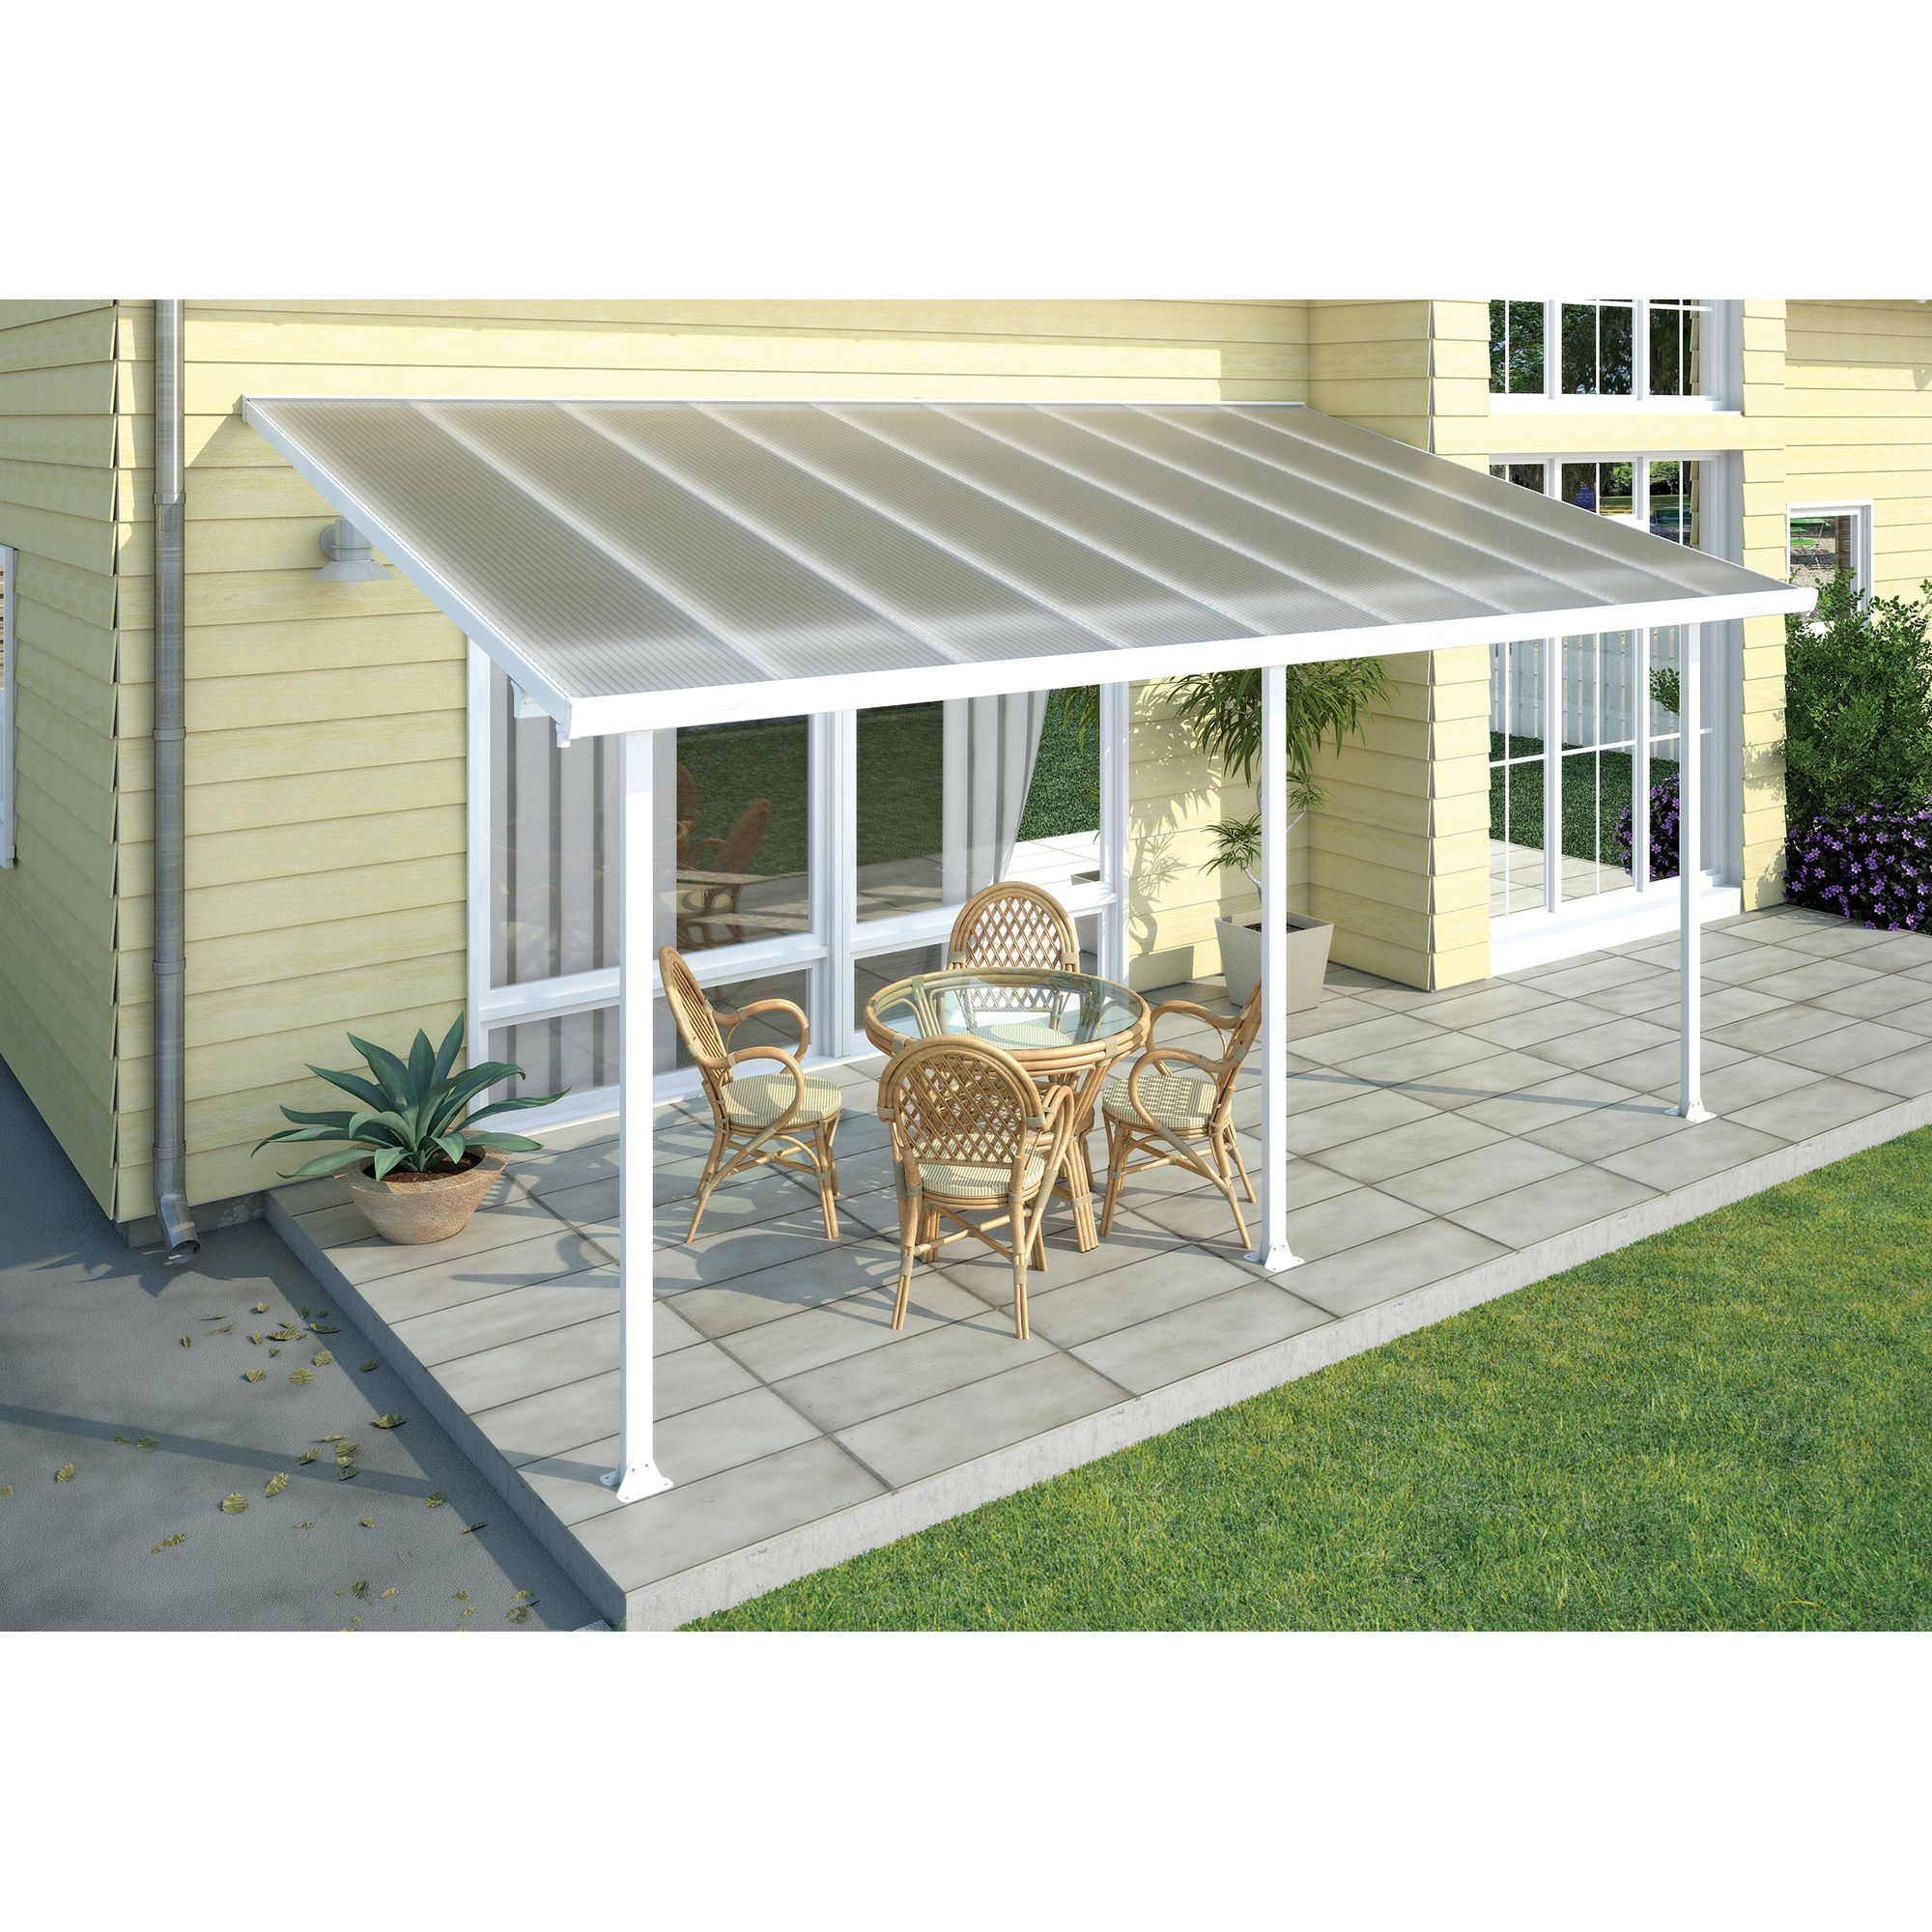 FERIA LEAN TO CARPORT AND PATIO COVER 3X12.76 WHITE at Tesco Direct